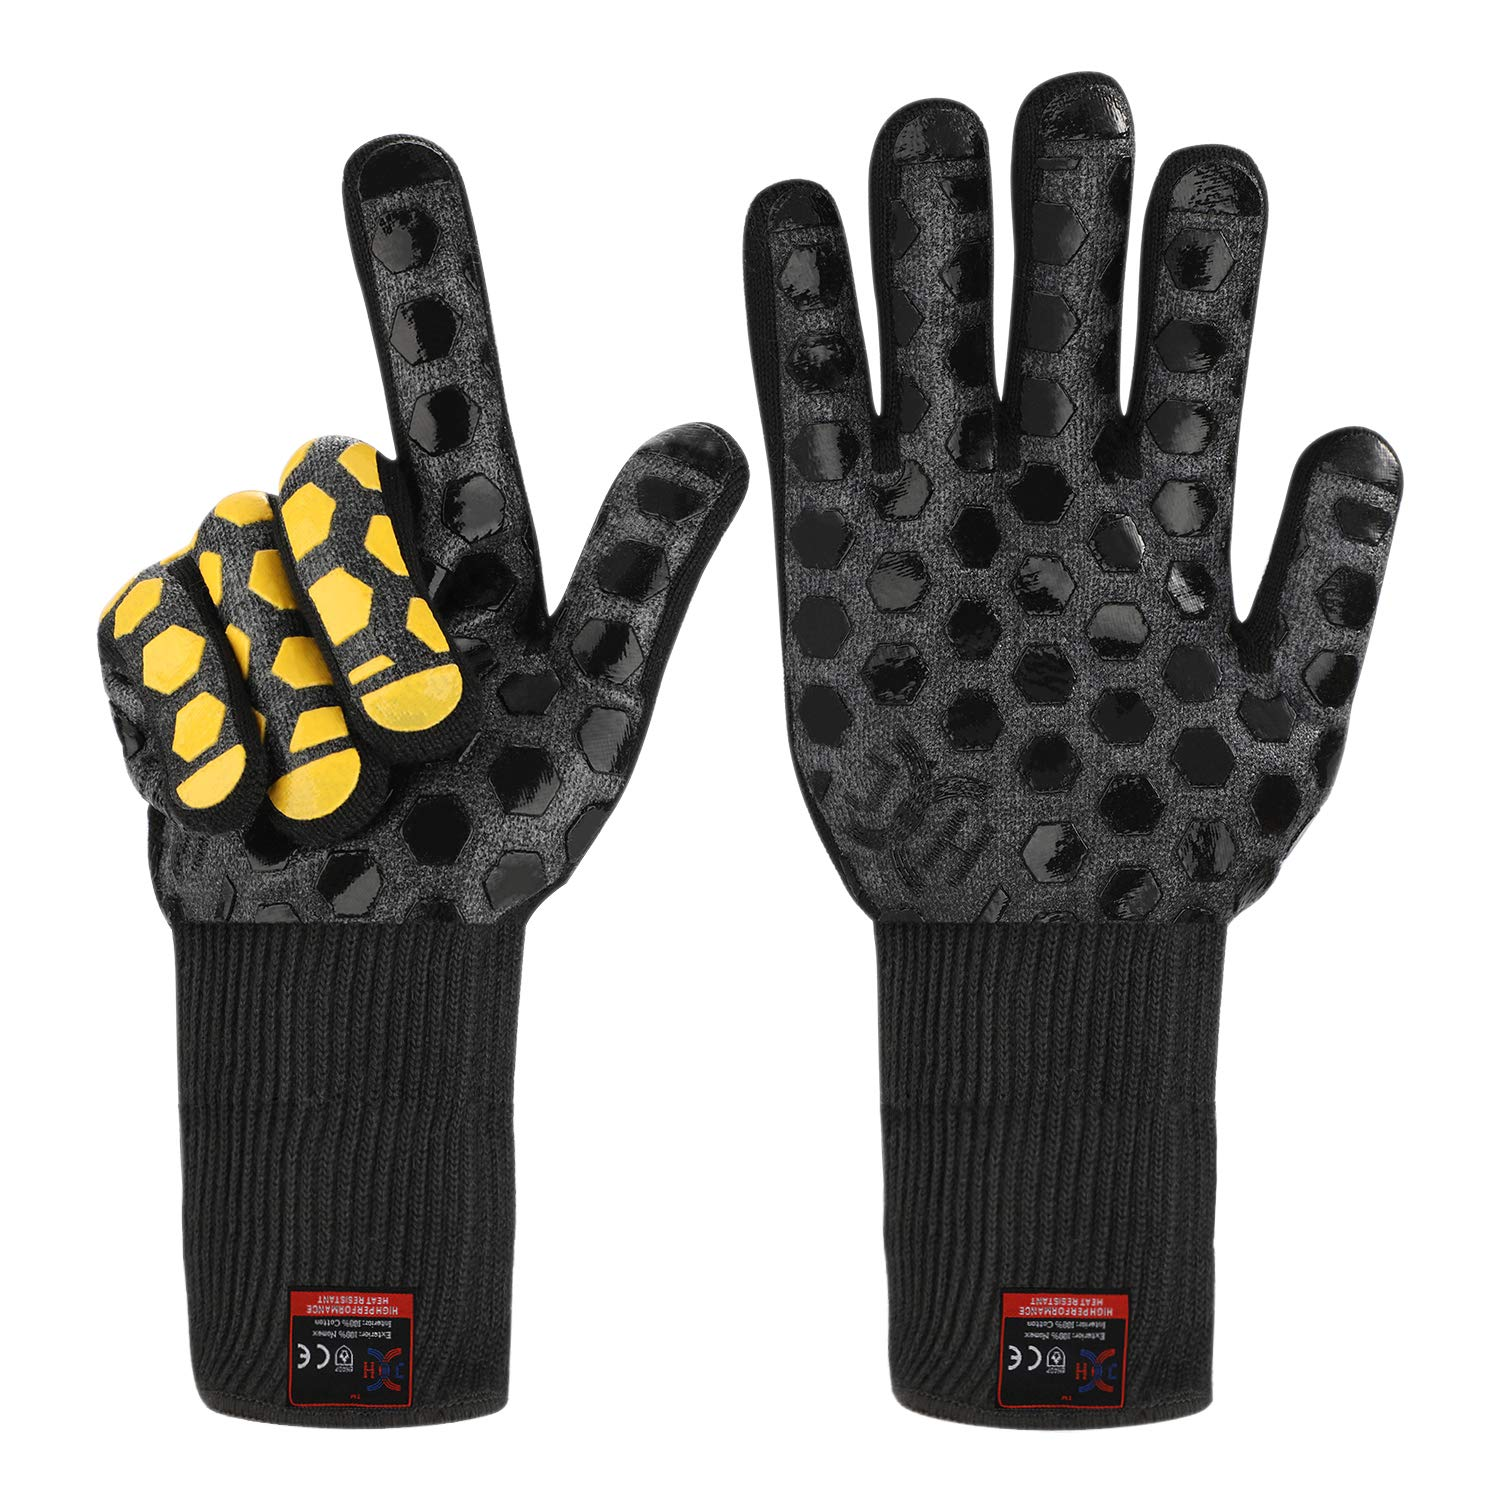 JH Heat Resistant Oven Glove:EN407 Certified 932 °F, 2 Layers Silicone Coating, Black Shell with Black/yellow Coating, Oven Mitts For Cooking, Kitchen, Fireplace, Grilling, 1 Pair, Extended Long Cuff